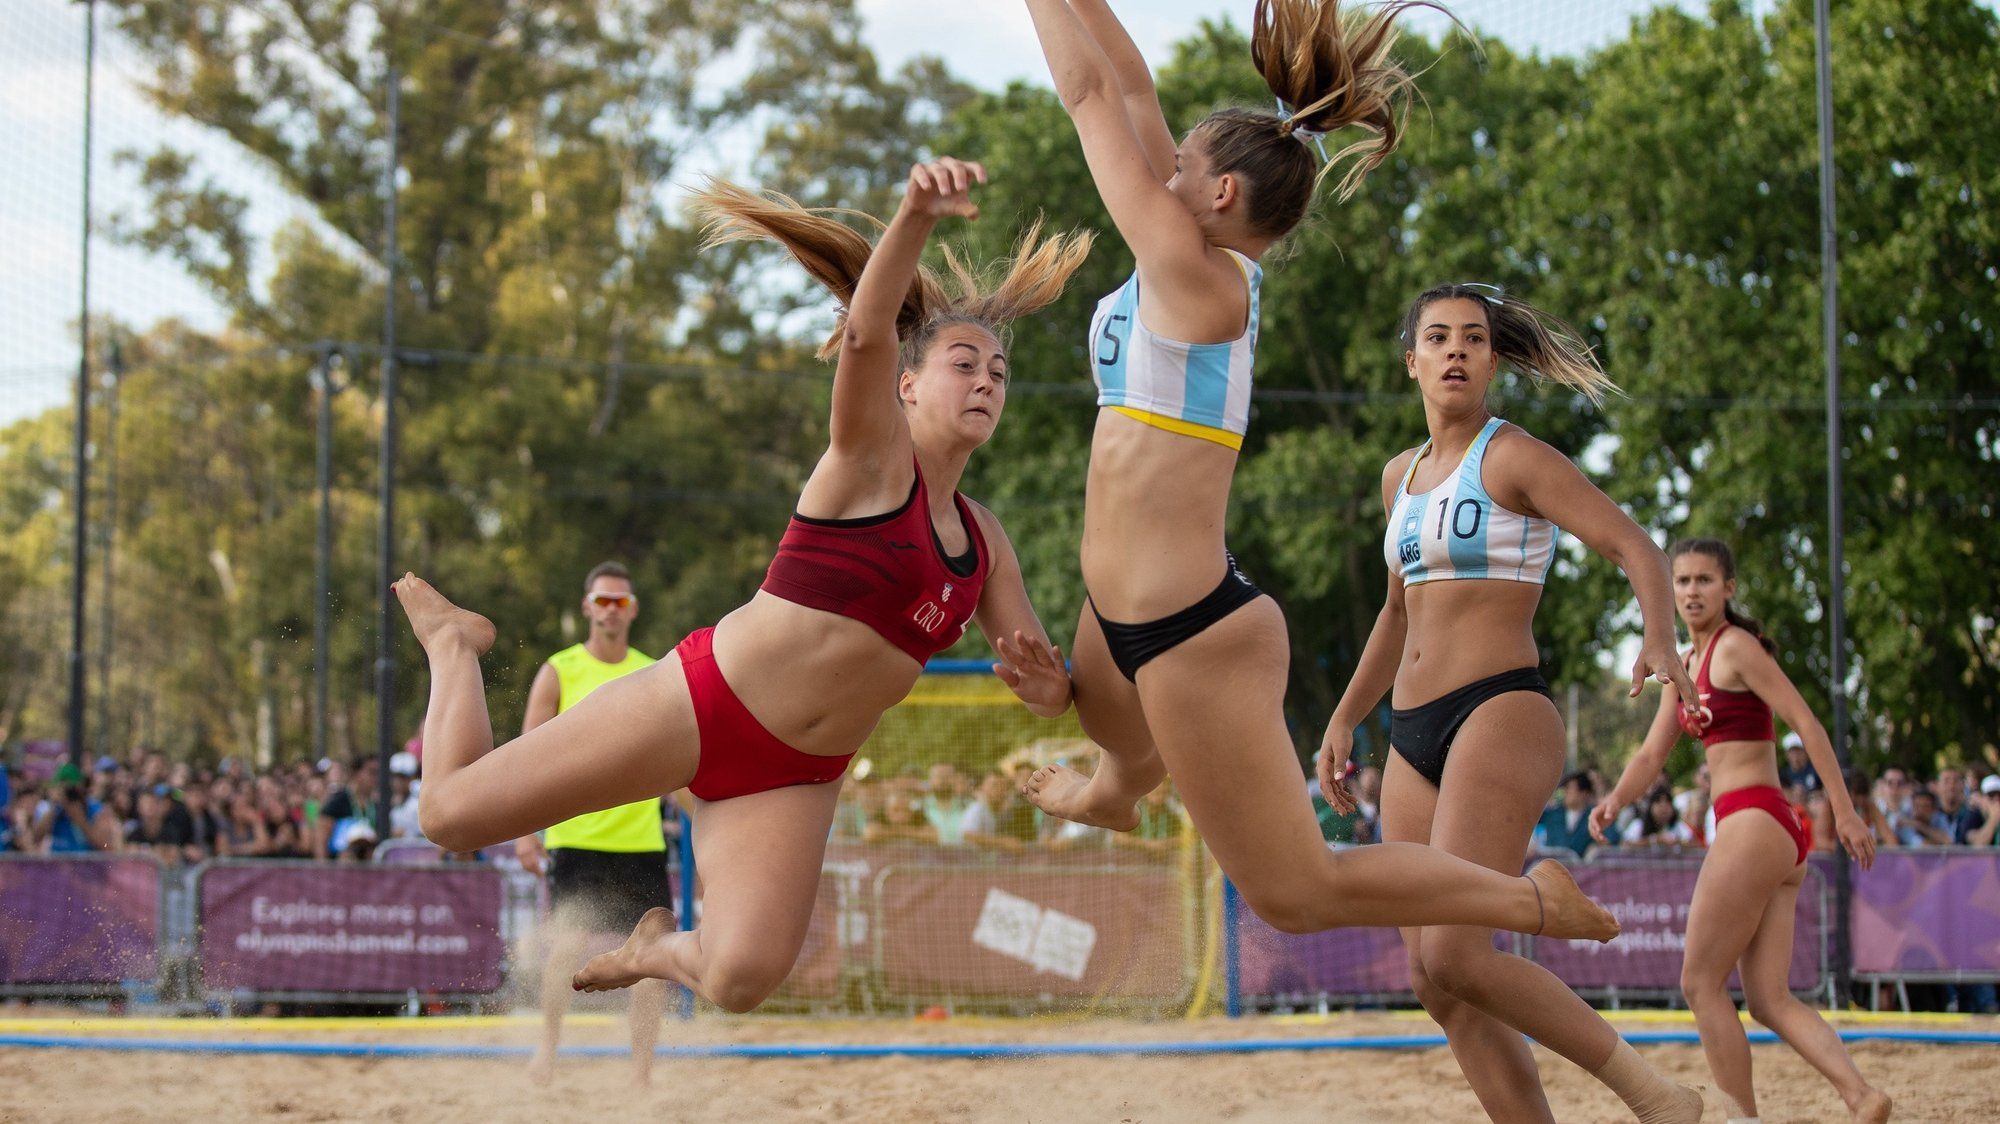 epa07091524 Jimena Riadigos of Argentina (C) in action during the Beach Handball Womens Tournament Final between Argentina and Croatia at The Beach Handball Arena, Tecnopolis Park during The Youth Olympic Games, Buenos Aires, Argentina, 13 October 2018.  EPA/Ian Walton for OIS/IOC  HANDOUT EDITORIAL USE ONLY